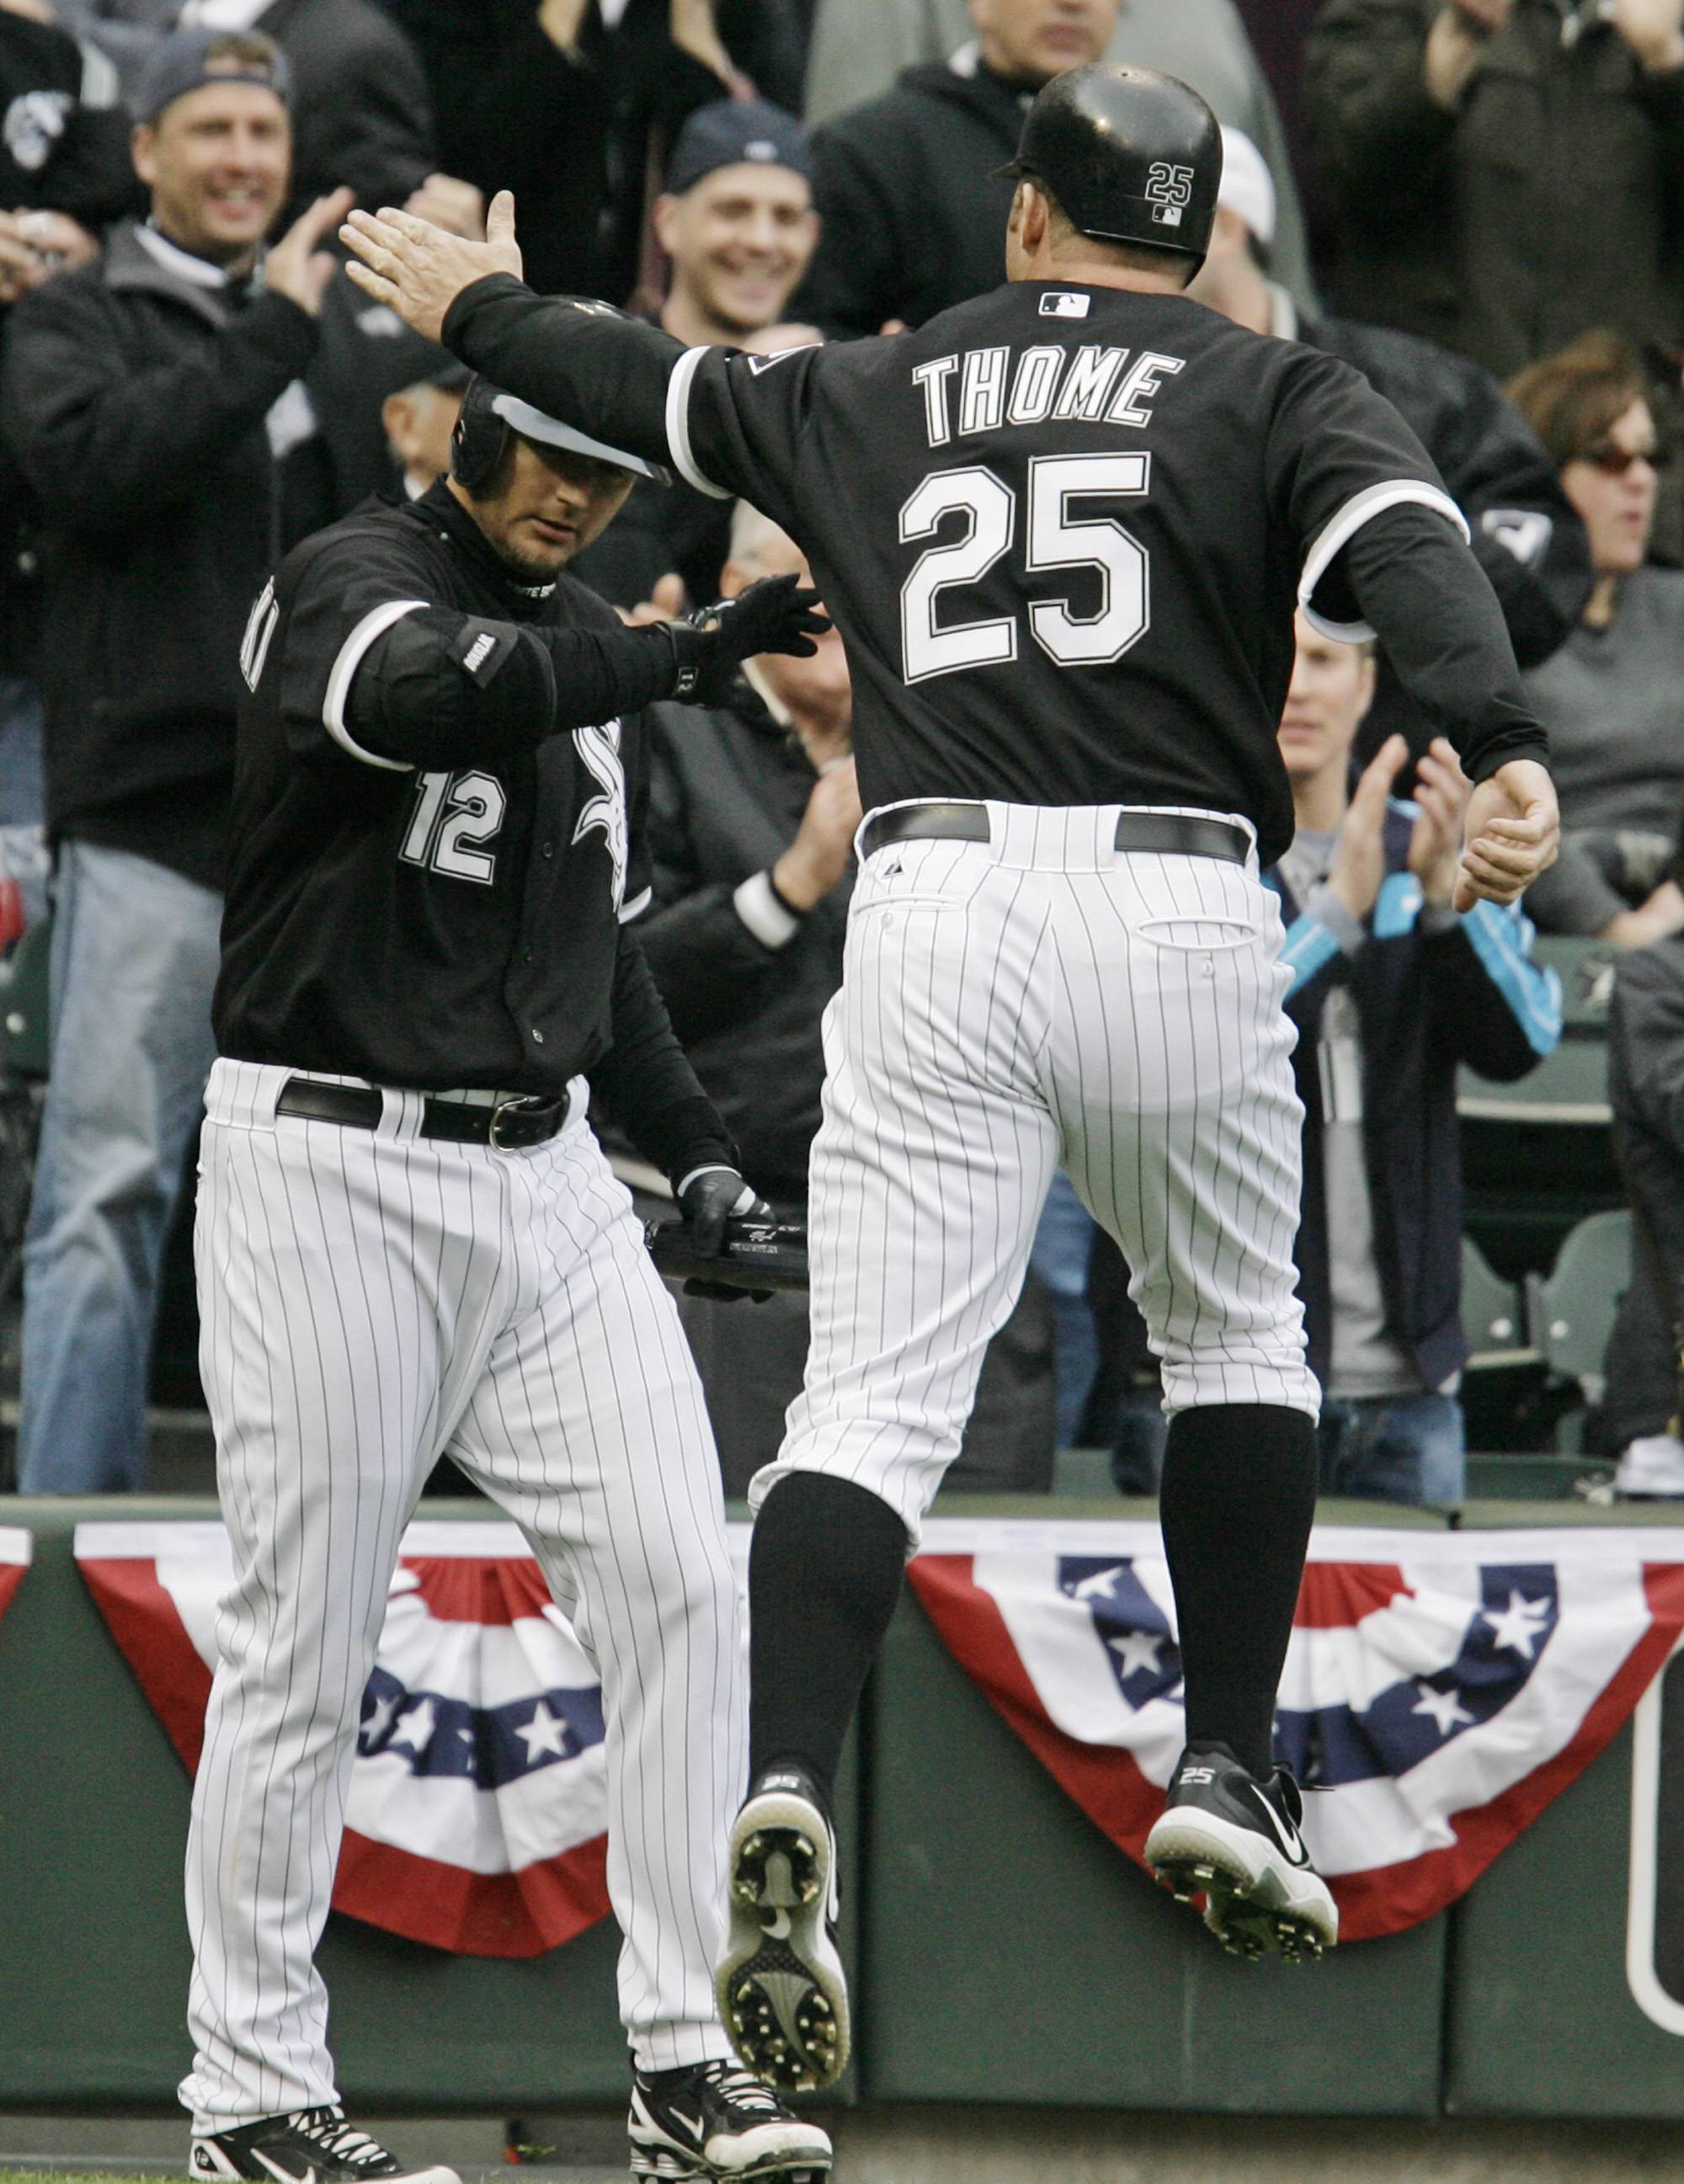 Chicago White Soxs' Jim Thome leaps in the air as he celebrates with A.J. Pierzynski after scoring on an RBI single by Jermaine Dye during the seventh inning of an MLB baseball game against the Minnesota Twins' Monday, April 7, 2008 in Chicago.